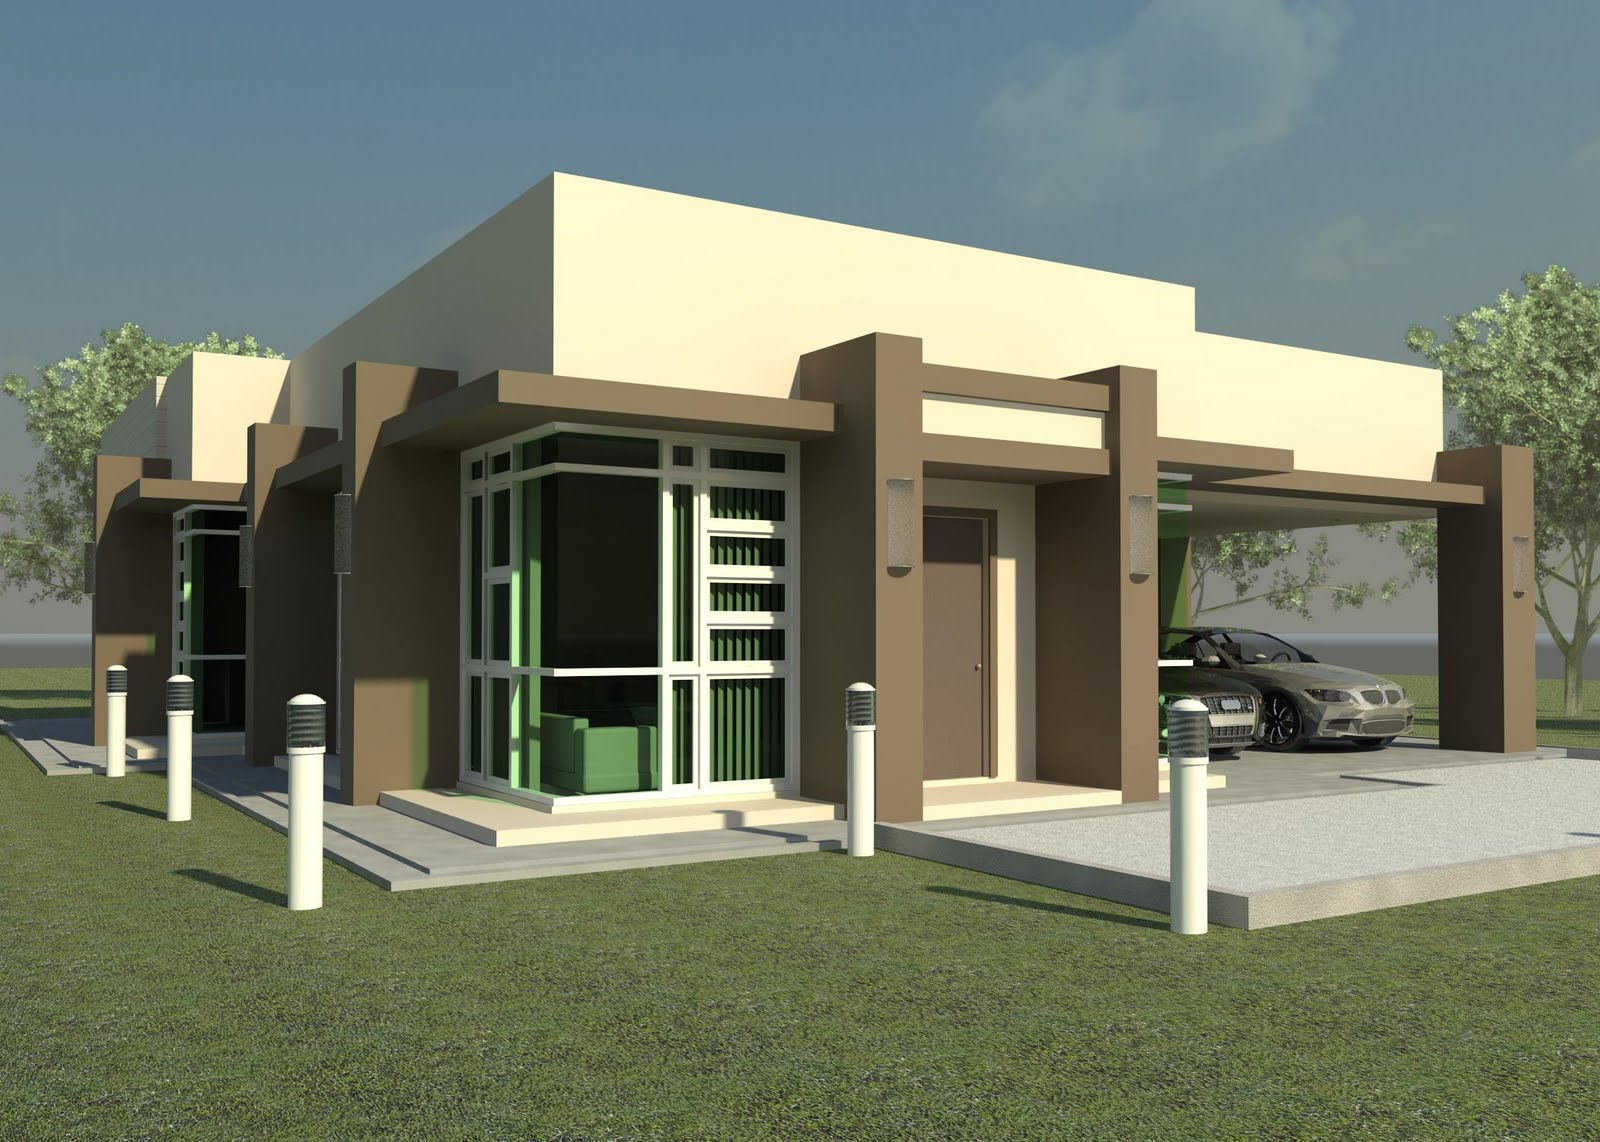 New home designs latest modern homes beautiful single storey designs ideas In home design